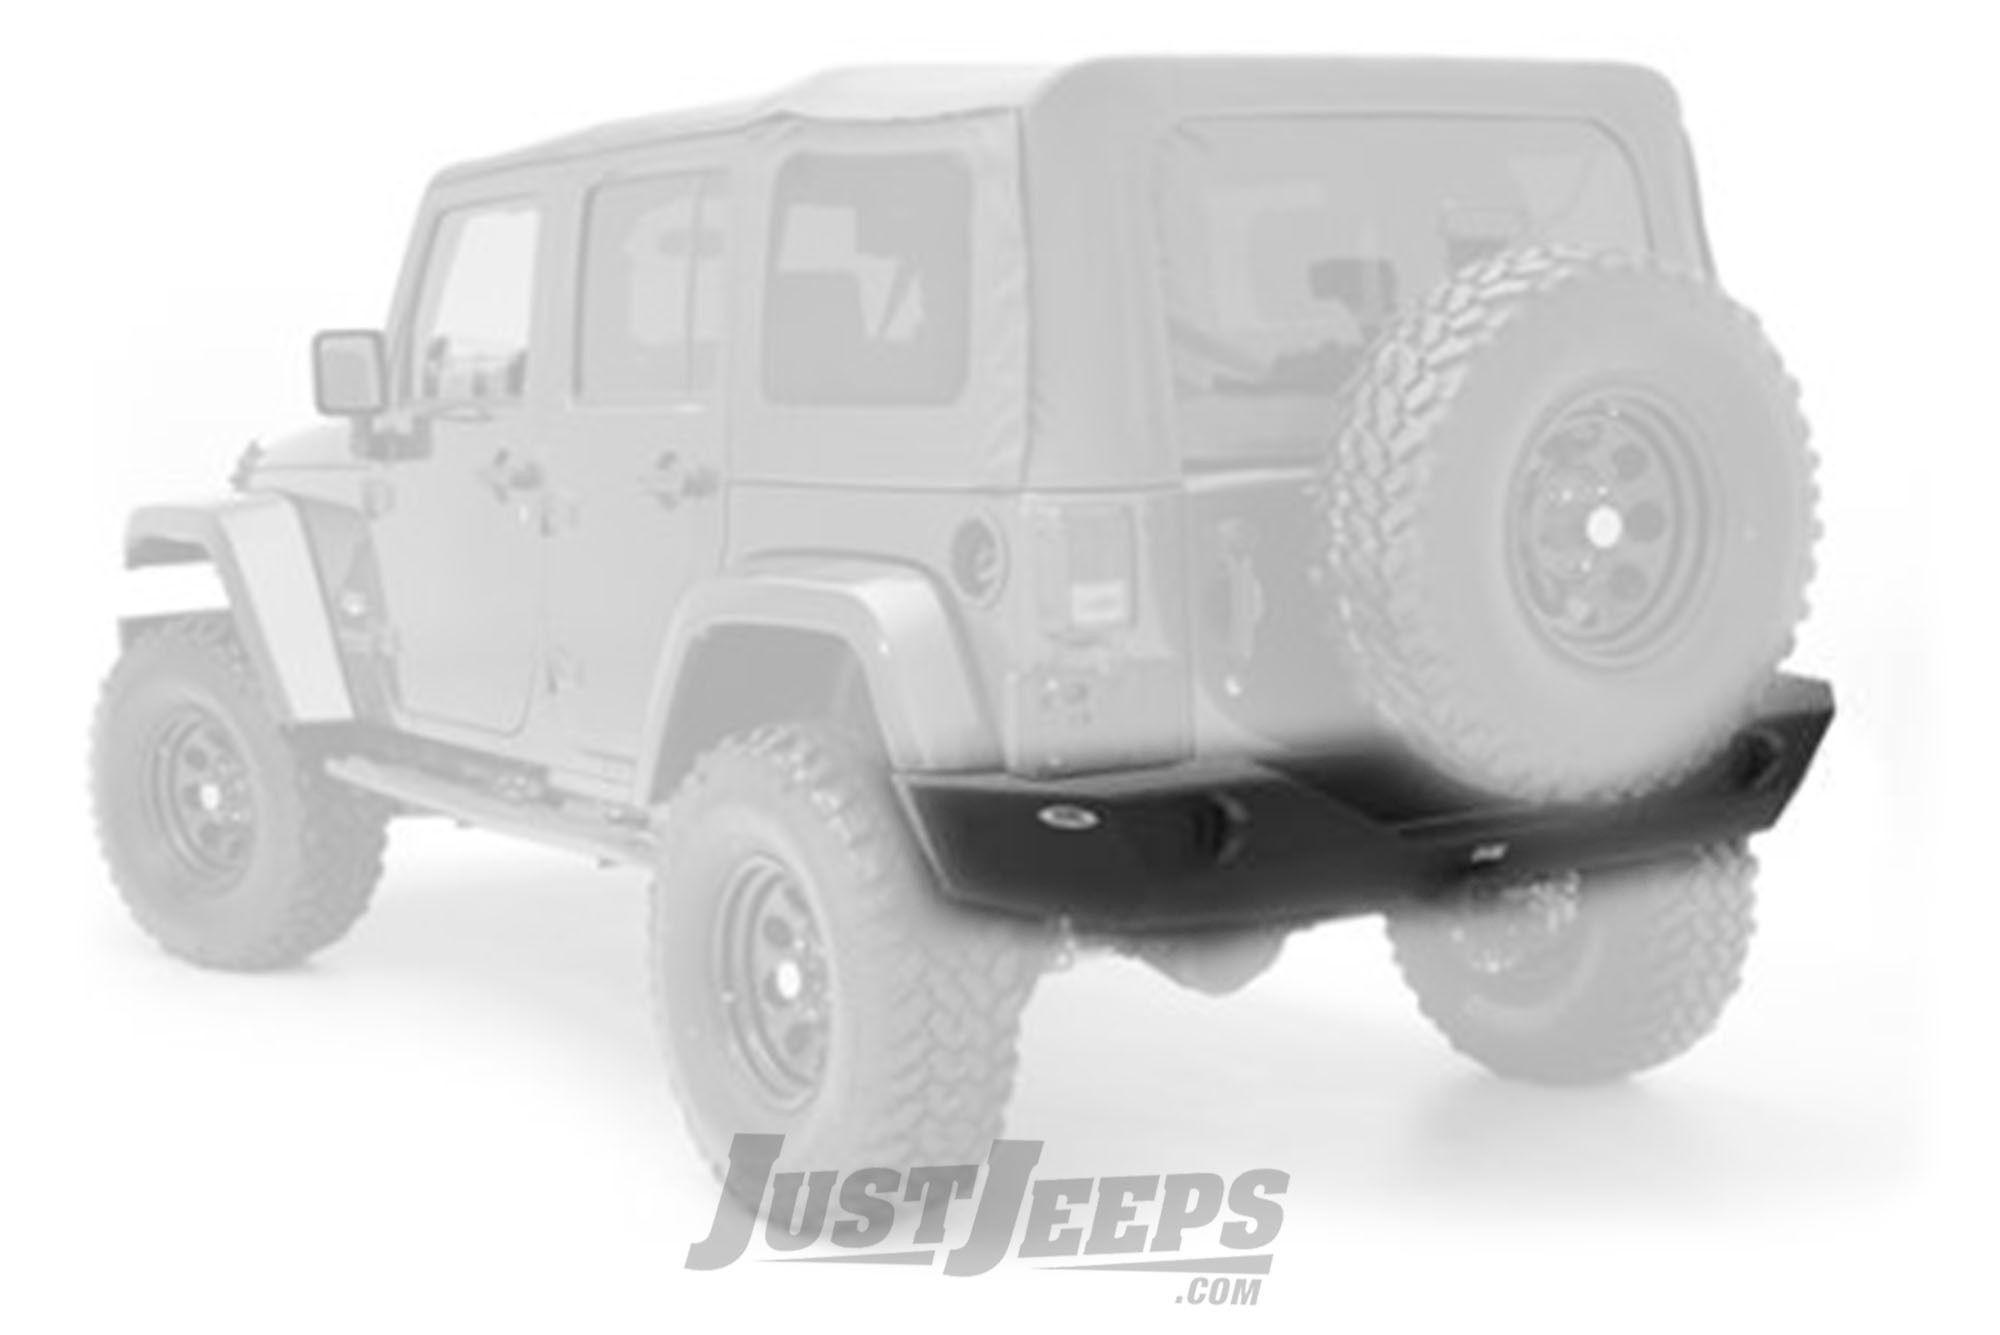 Just Jeeps Buy Smittybilt Xrc Armor Rear Bumper With Hitch For 2007 Jeep Wrangler Jk Sub 18 2 Door Unlimited 4 Models